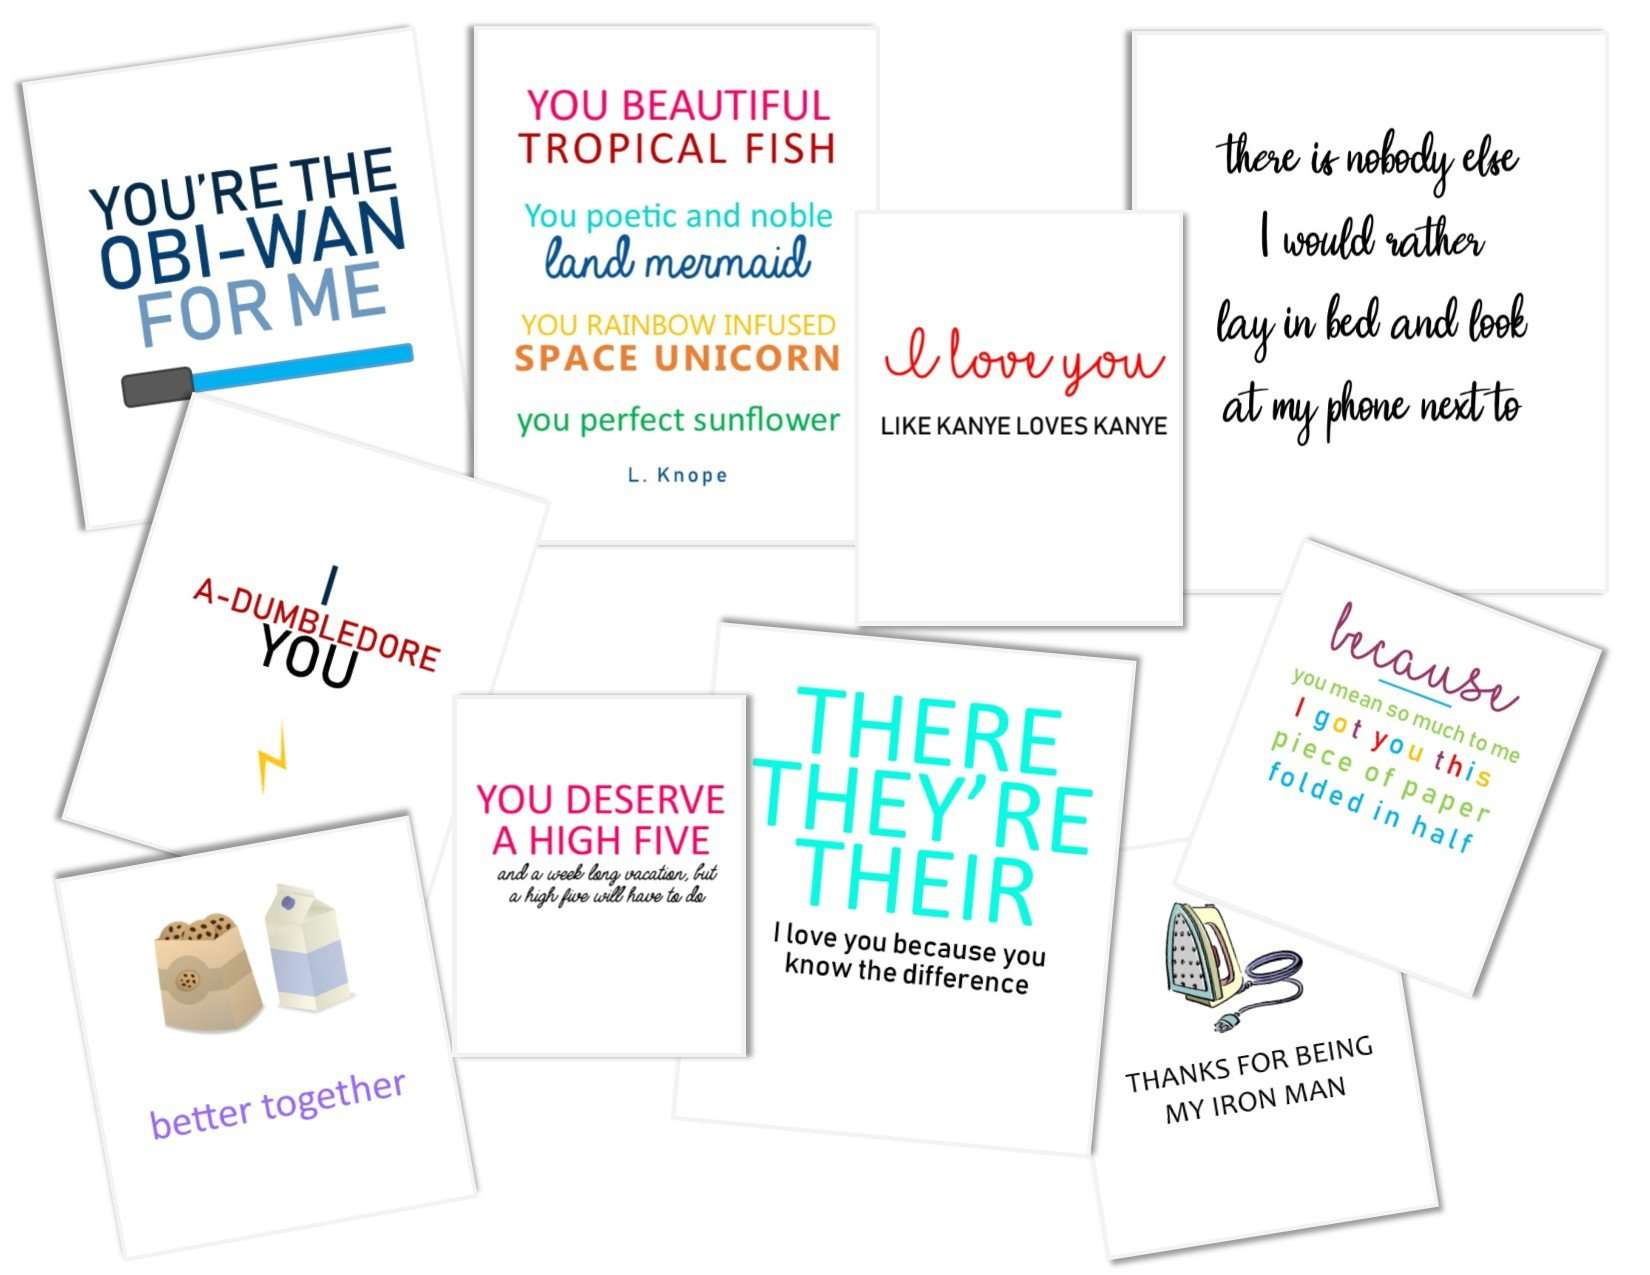 A collection of funny valentines laying on a table